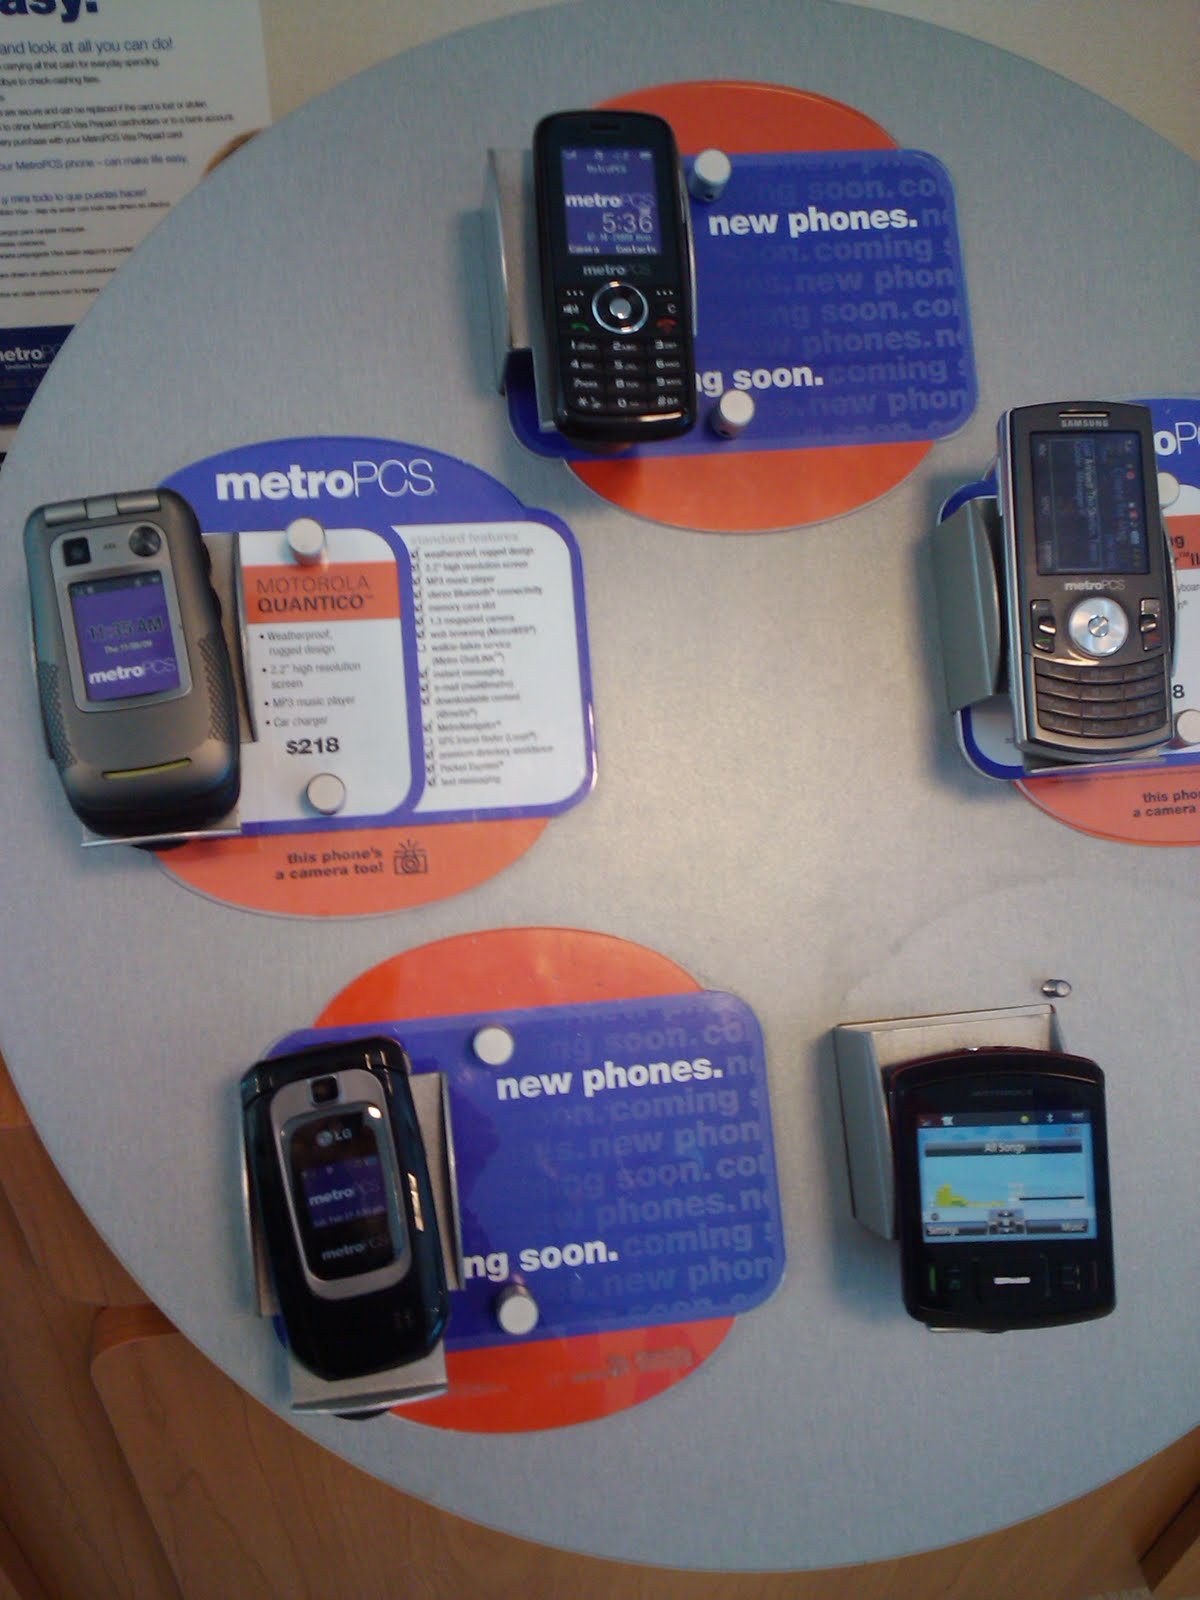 New phones for metro pcs coming soon / Free shipping code ikea